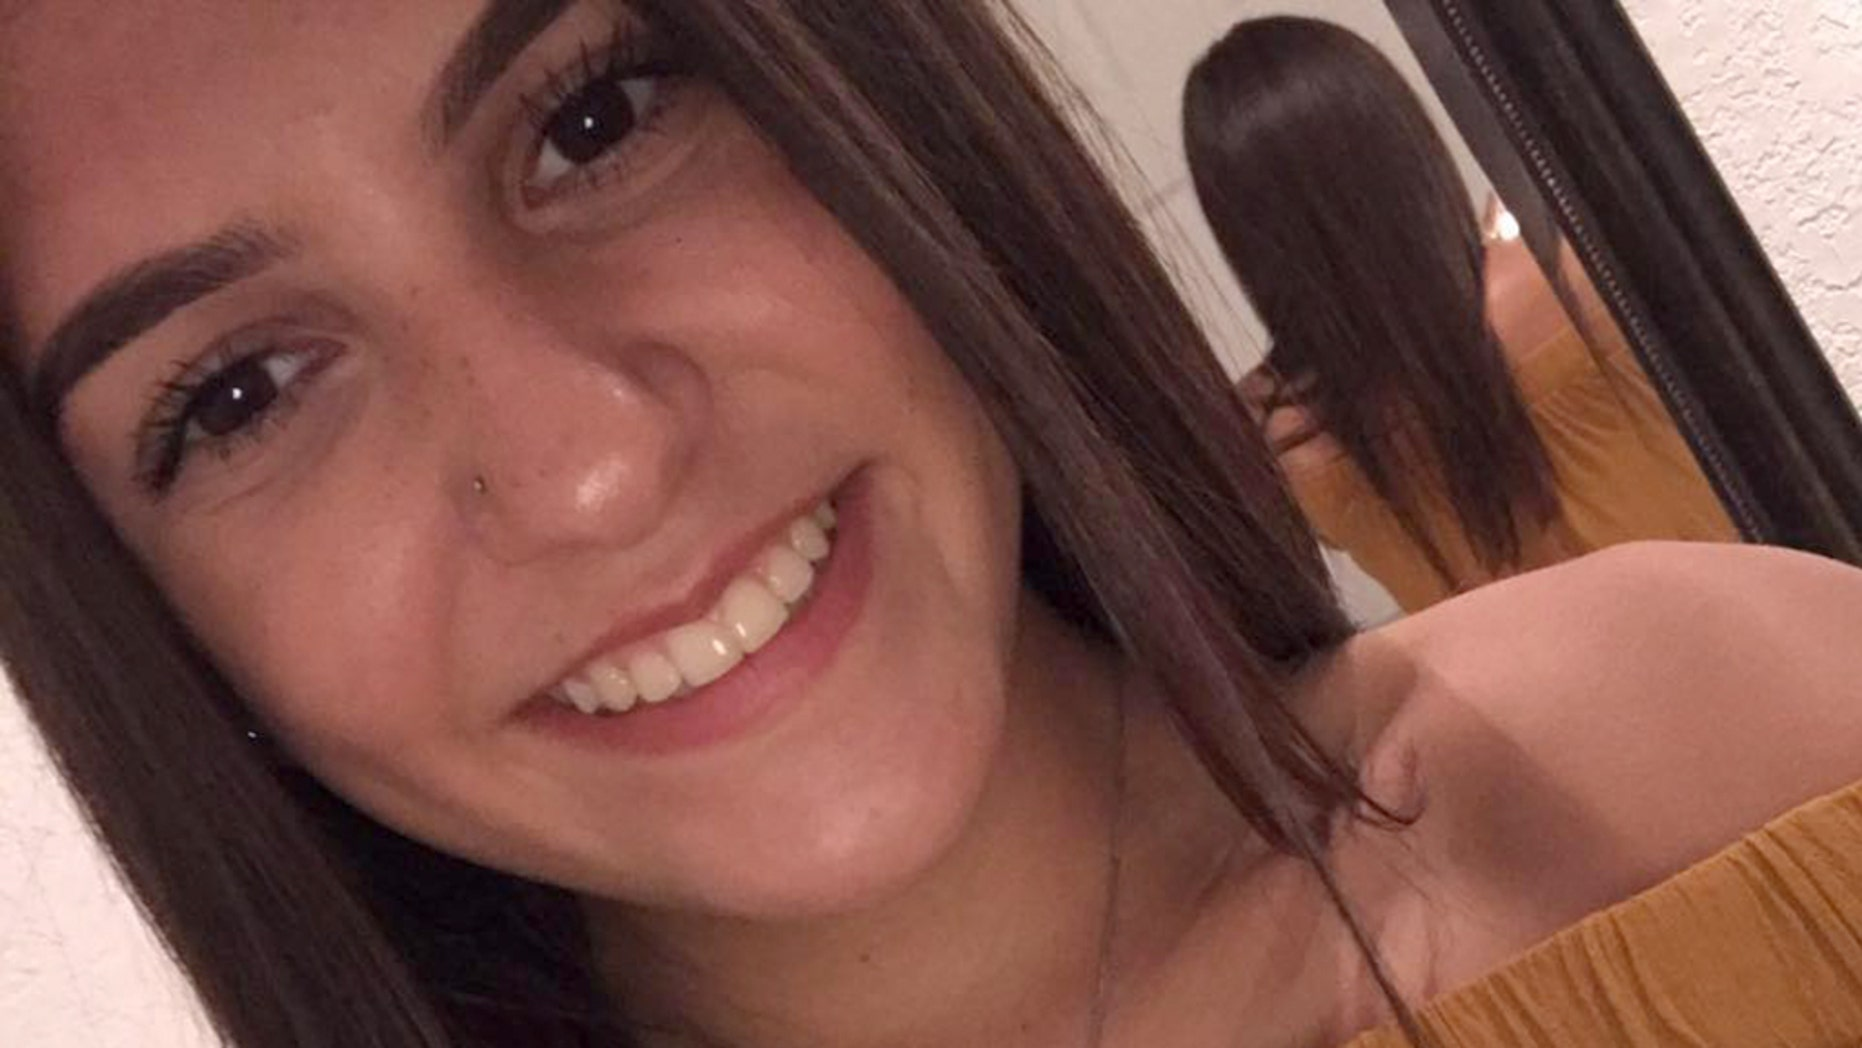 Kaitlin Leonor Castilleja was stabbed to death by a 16-year-old girl who she attended high school with before graduating last year. Her family said she was feuding with the stabbing suspect before her death.